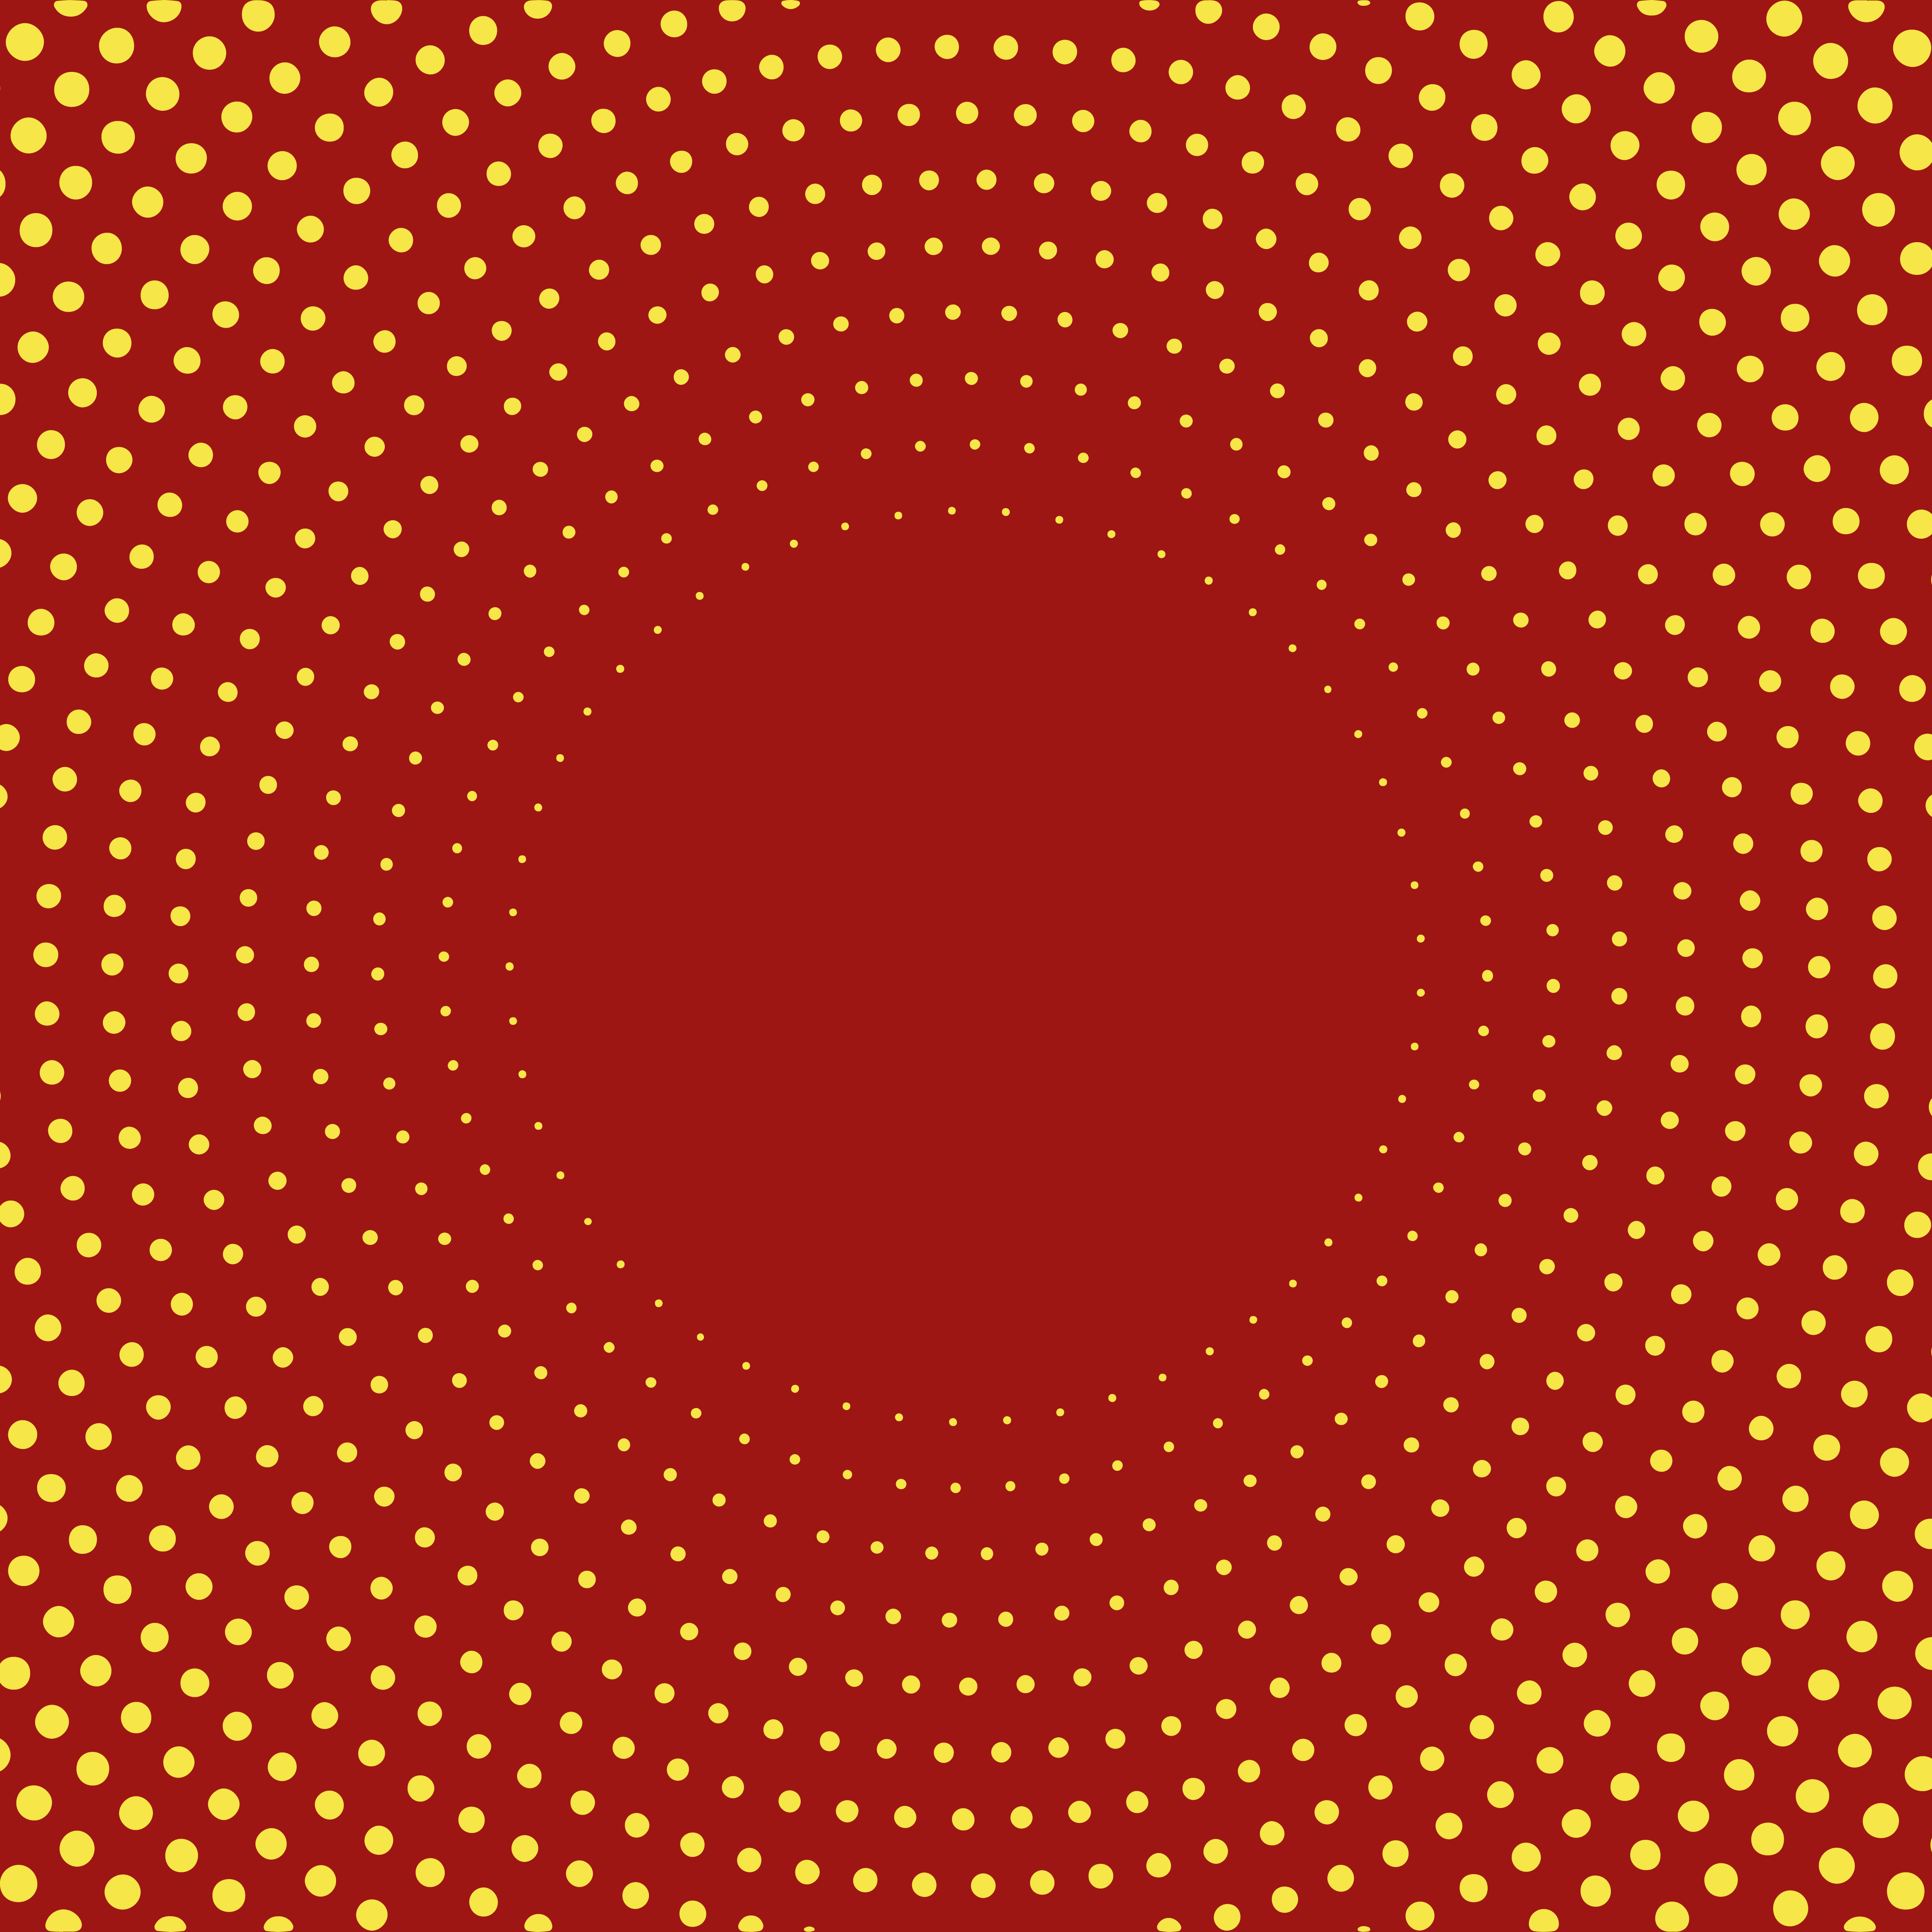 Red Gradient Halftone Background Vector Download Free